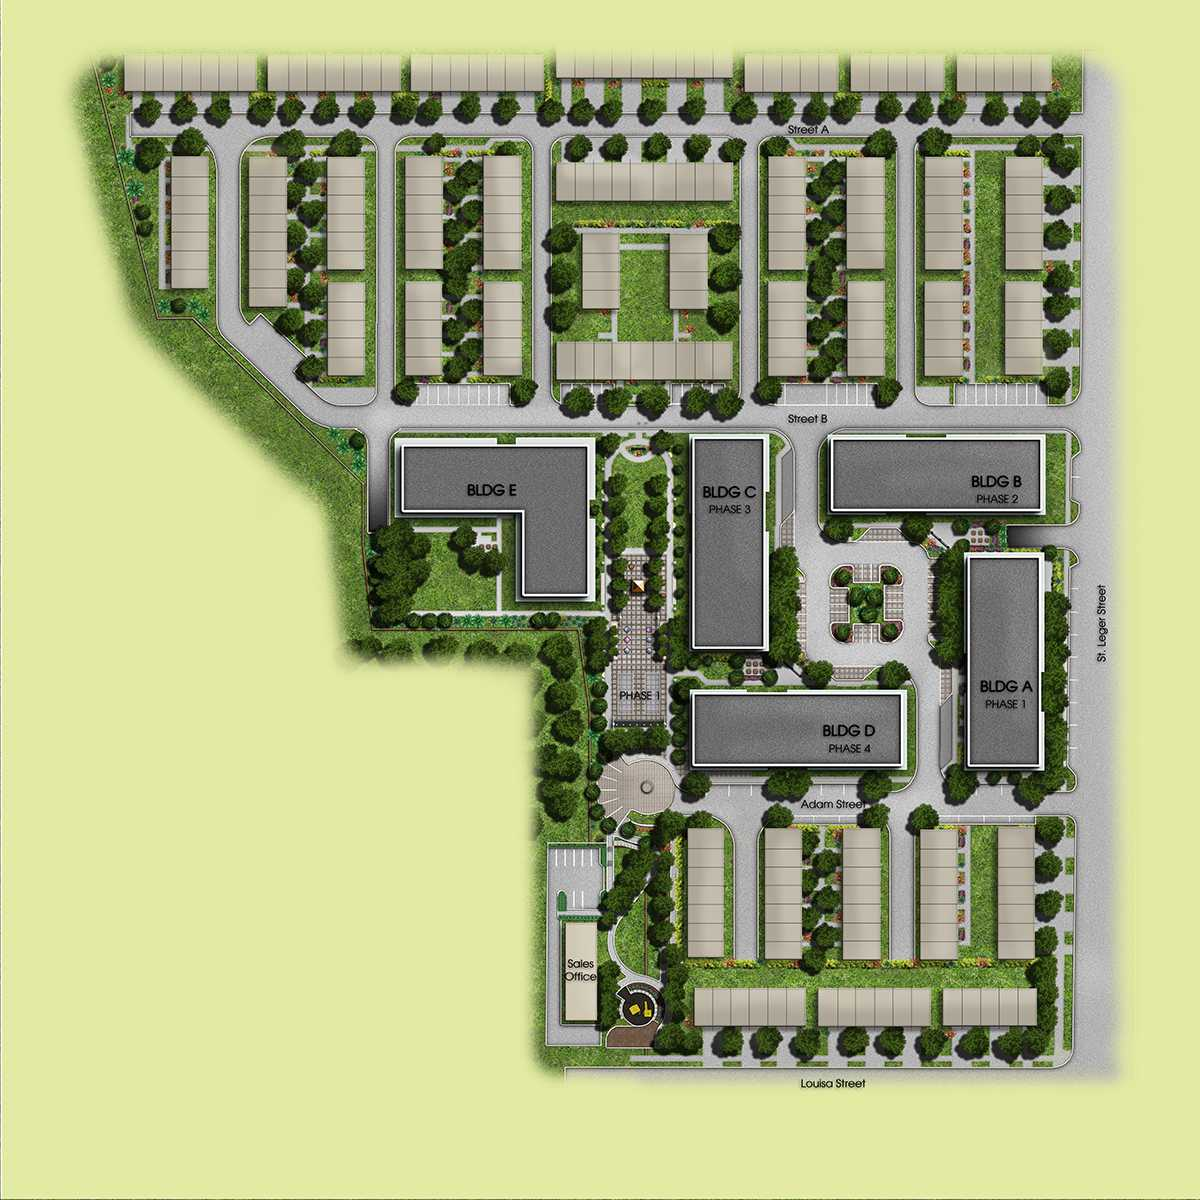 Victoria Common CondominiumsSiteplan_Final